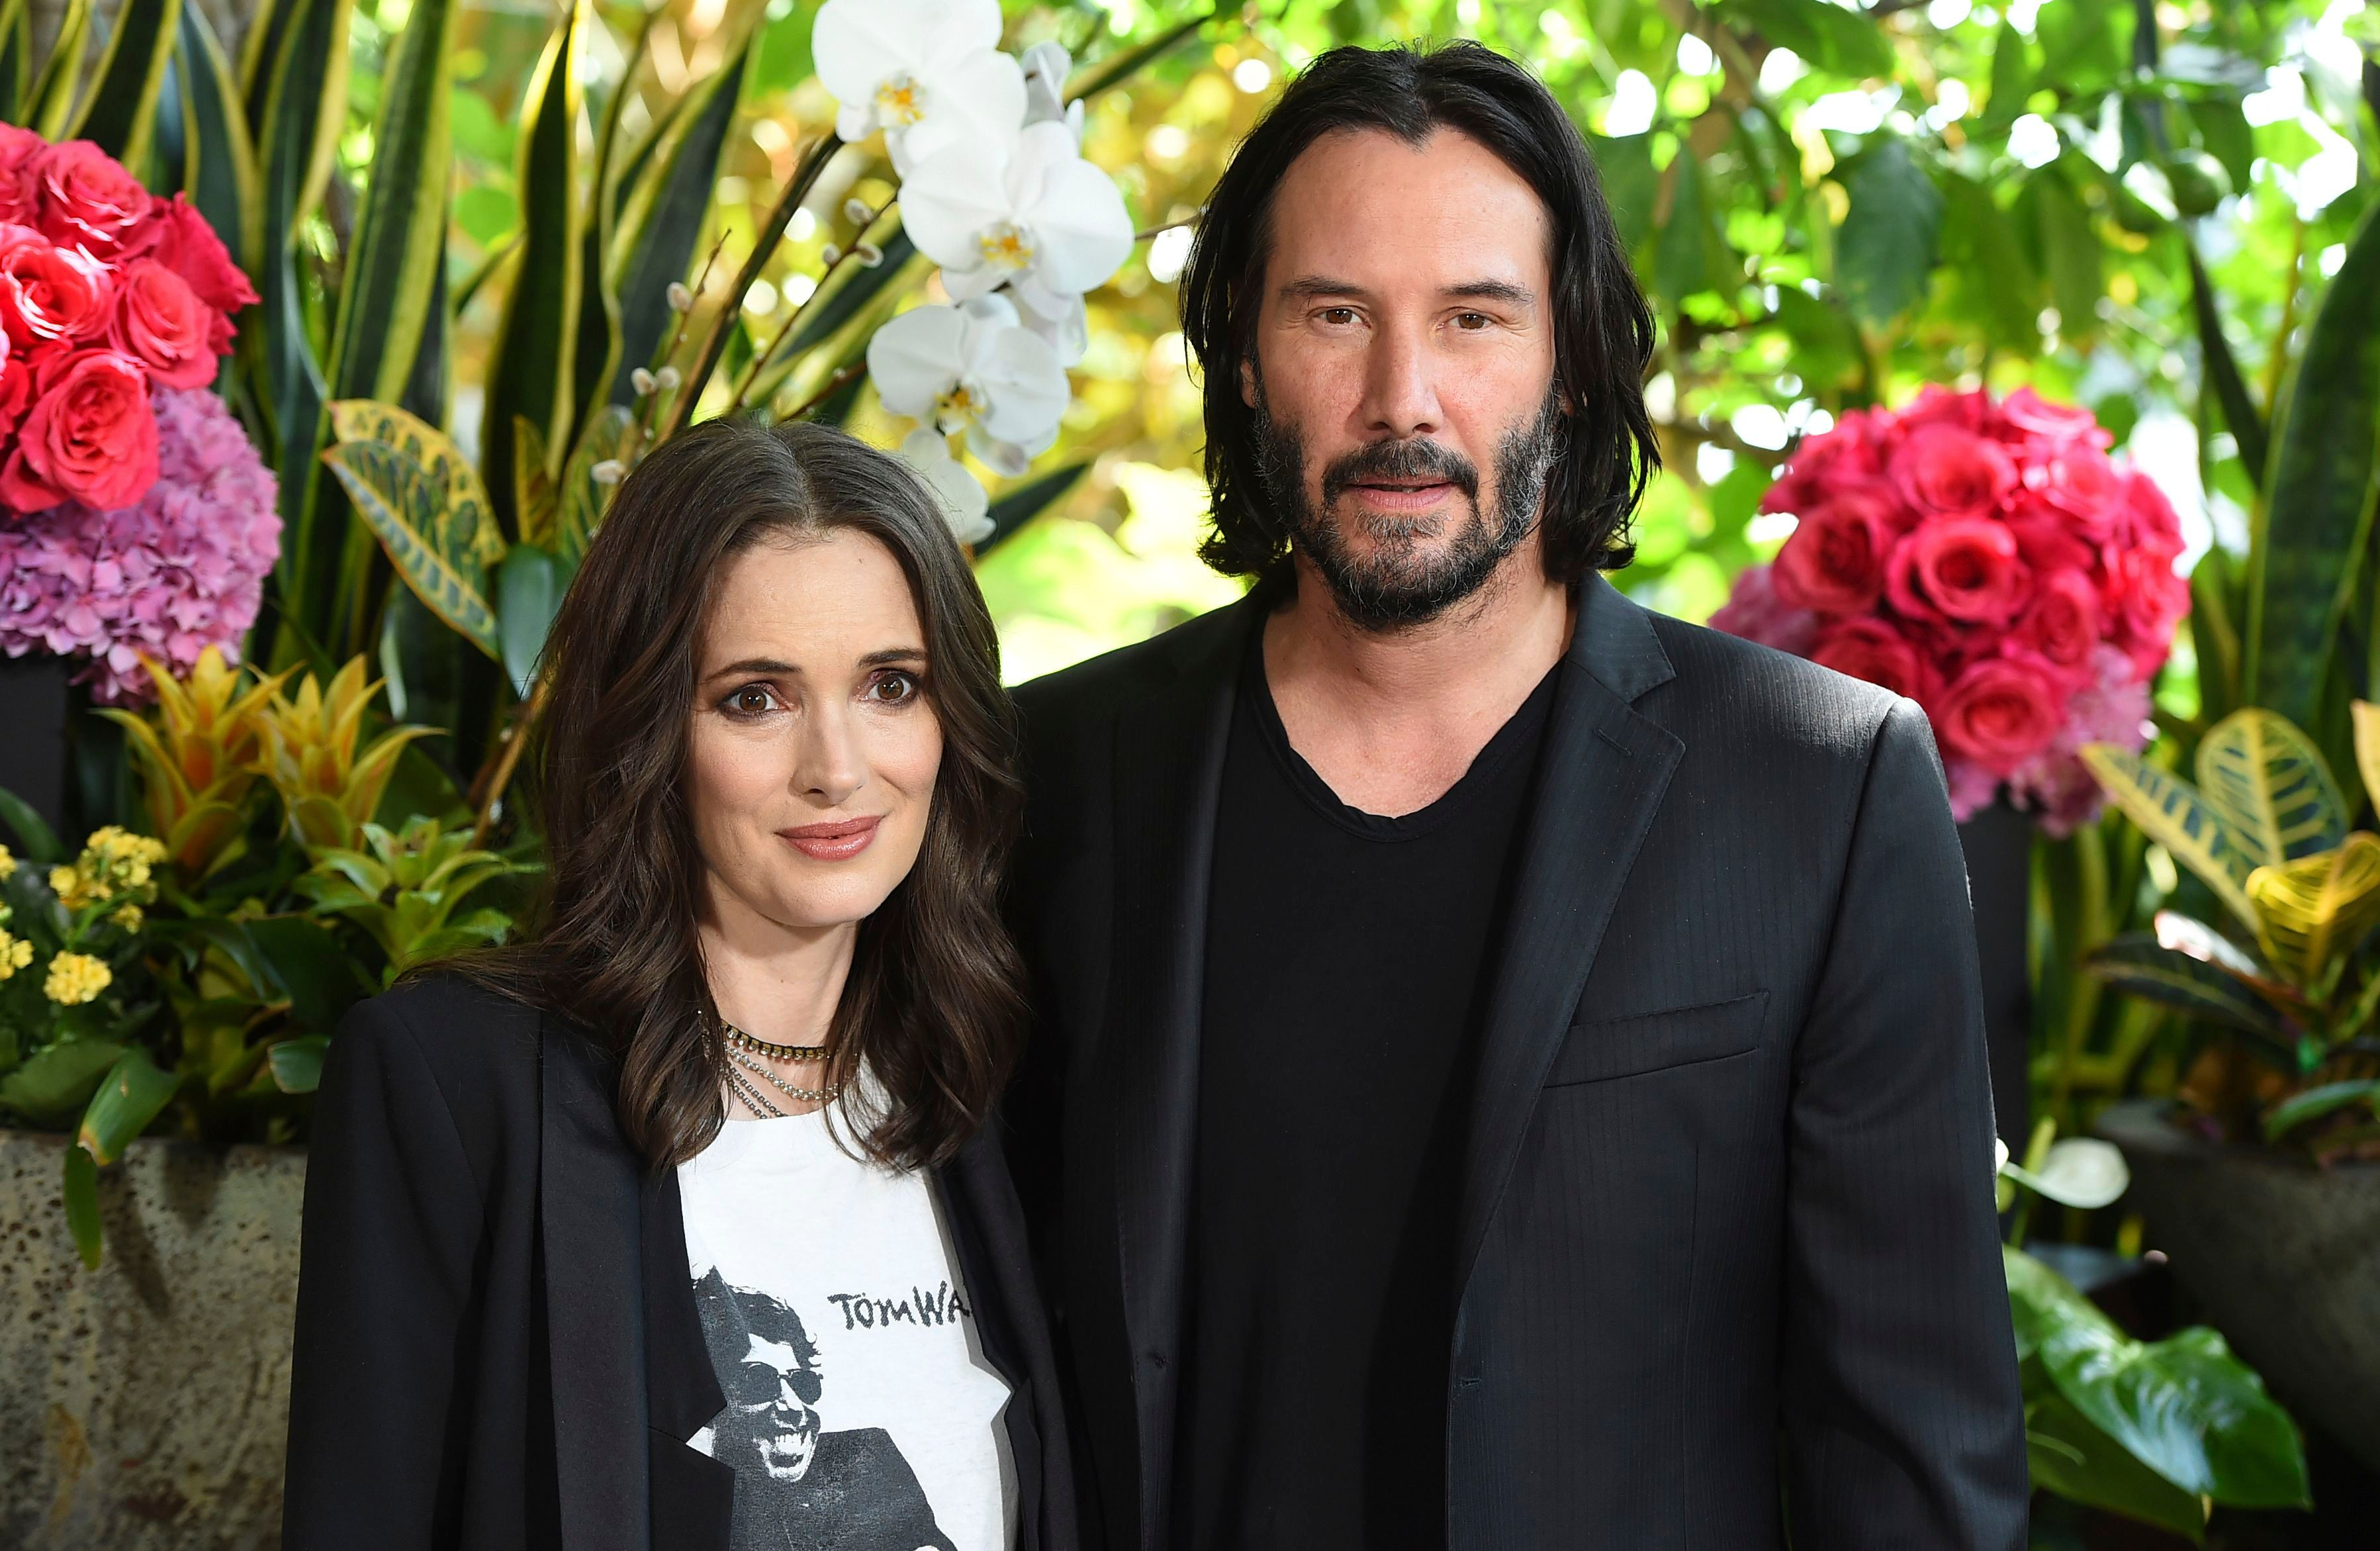 Keanu Reeves and Winona Ryder Might Be Legally Married, and We Have Francis Ford Coppola to Thank